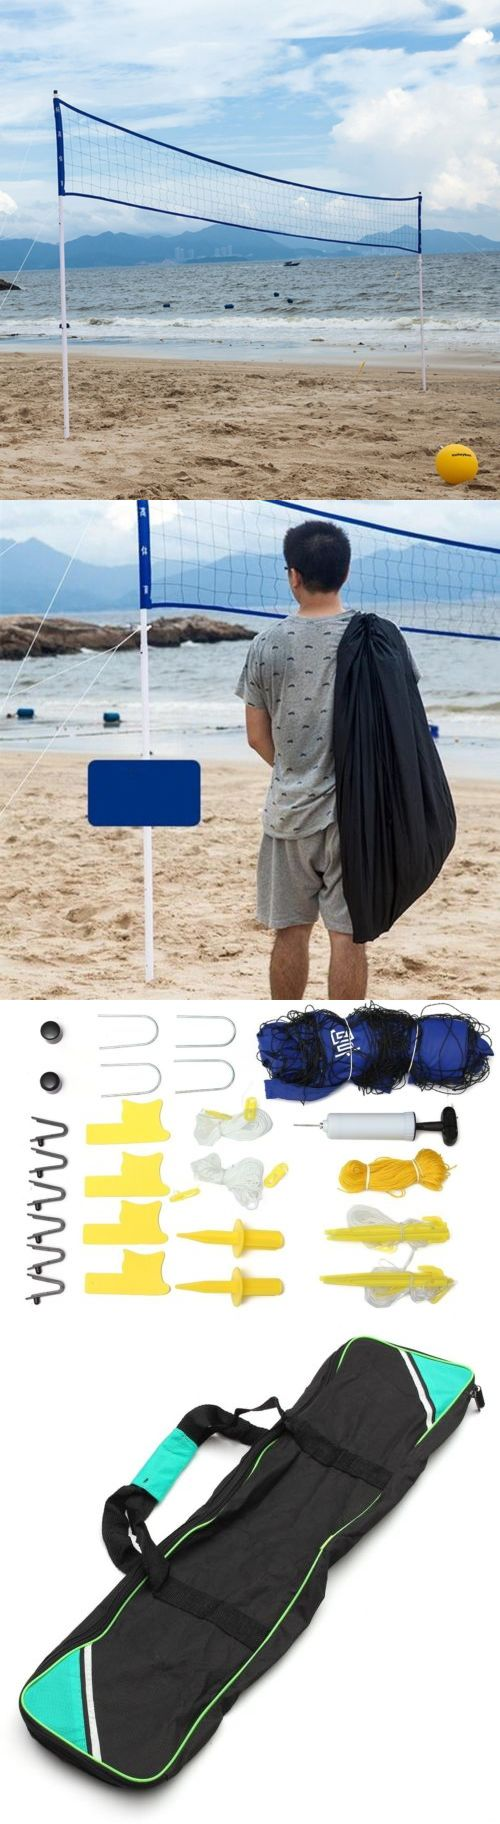 Nets 159131: Outdoor Beach Volleyball Set Professional Volleyball Competition Accessories -> BUY IT NOW ONLY: $91.58 on eBay!